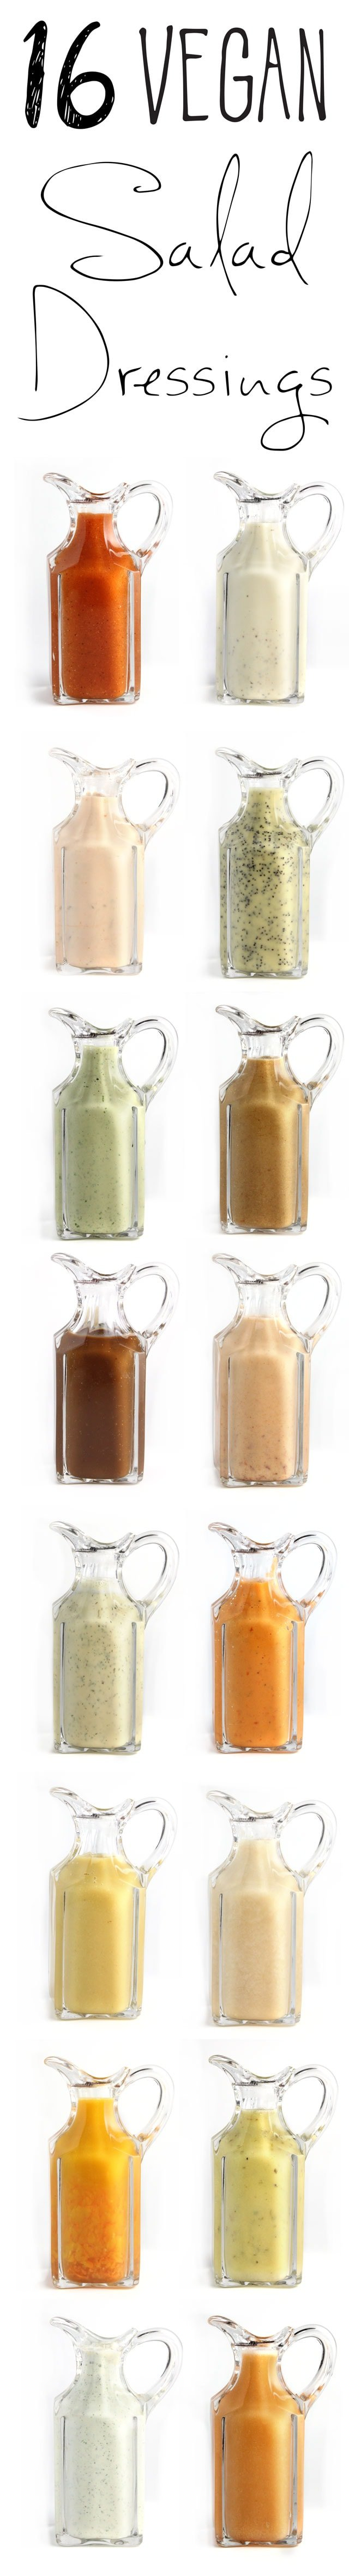 16 Vegan Salad Dressings! Some of the most popular vegan recipes of 2015!